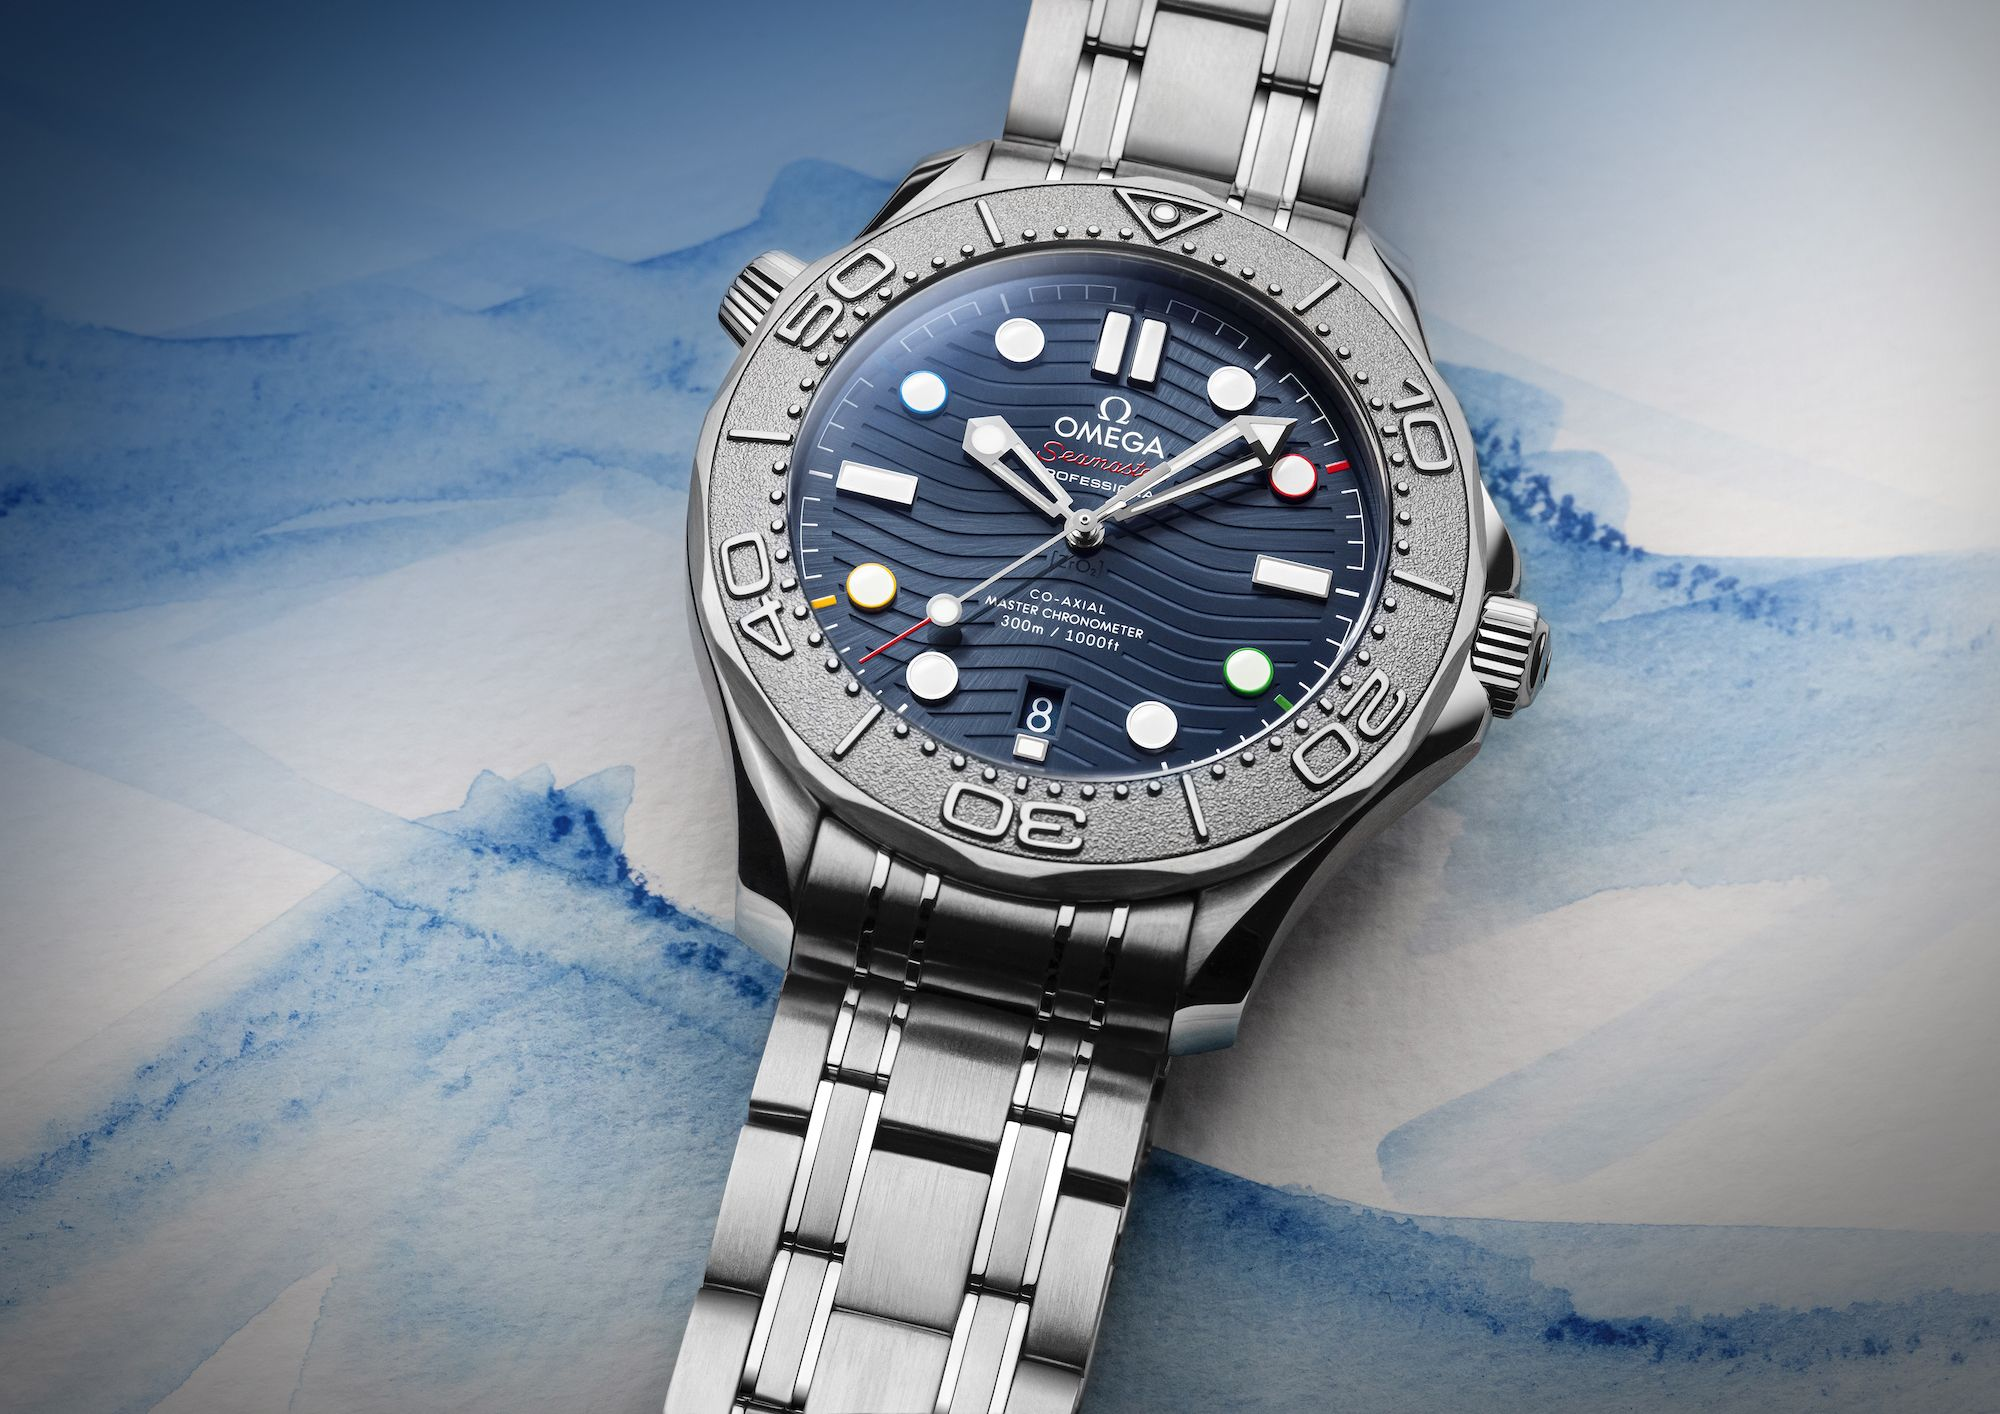 Omega Has Dropped A Special Edition Timepiece In Honour Of The 2022 Beijing Winter Olympics